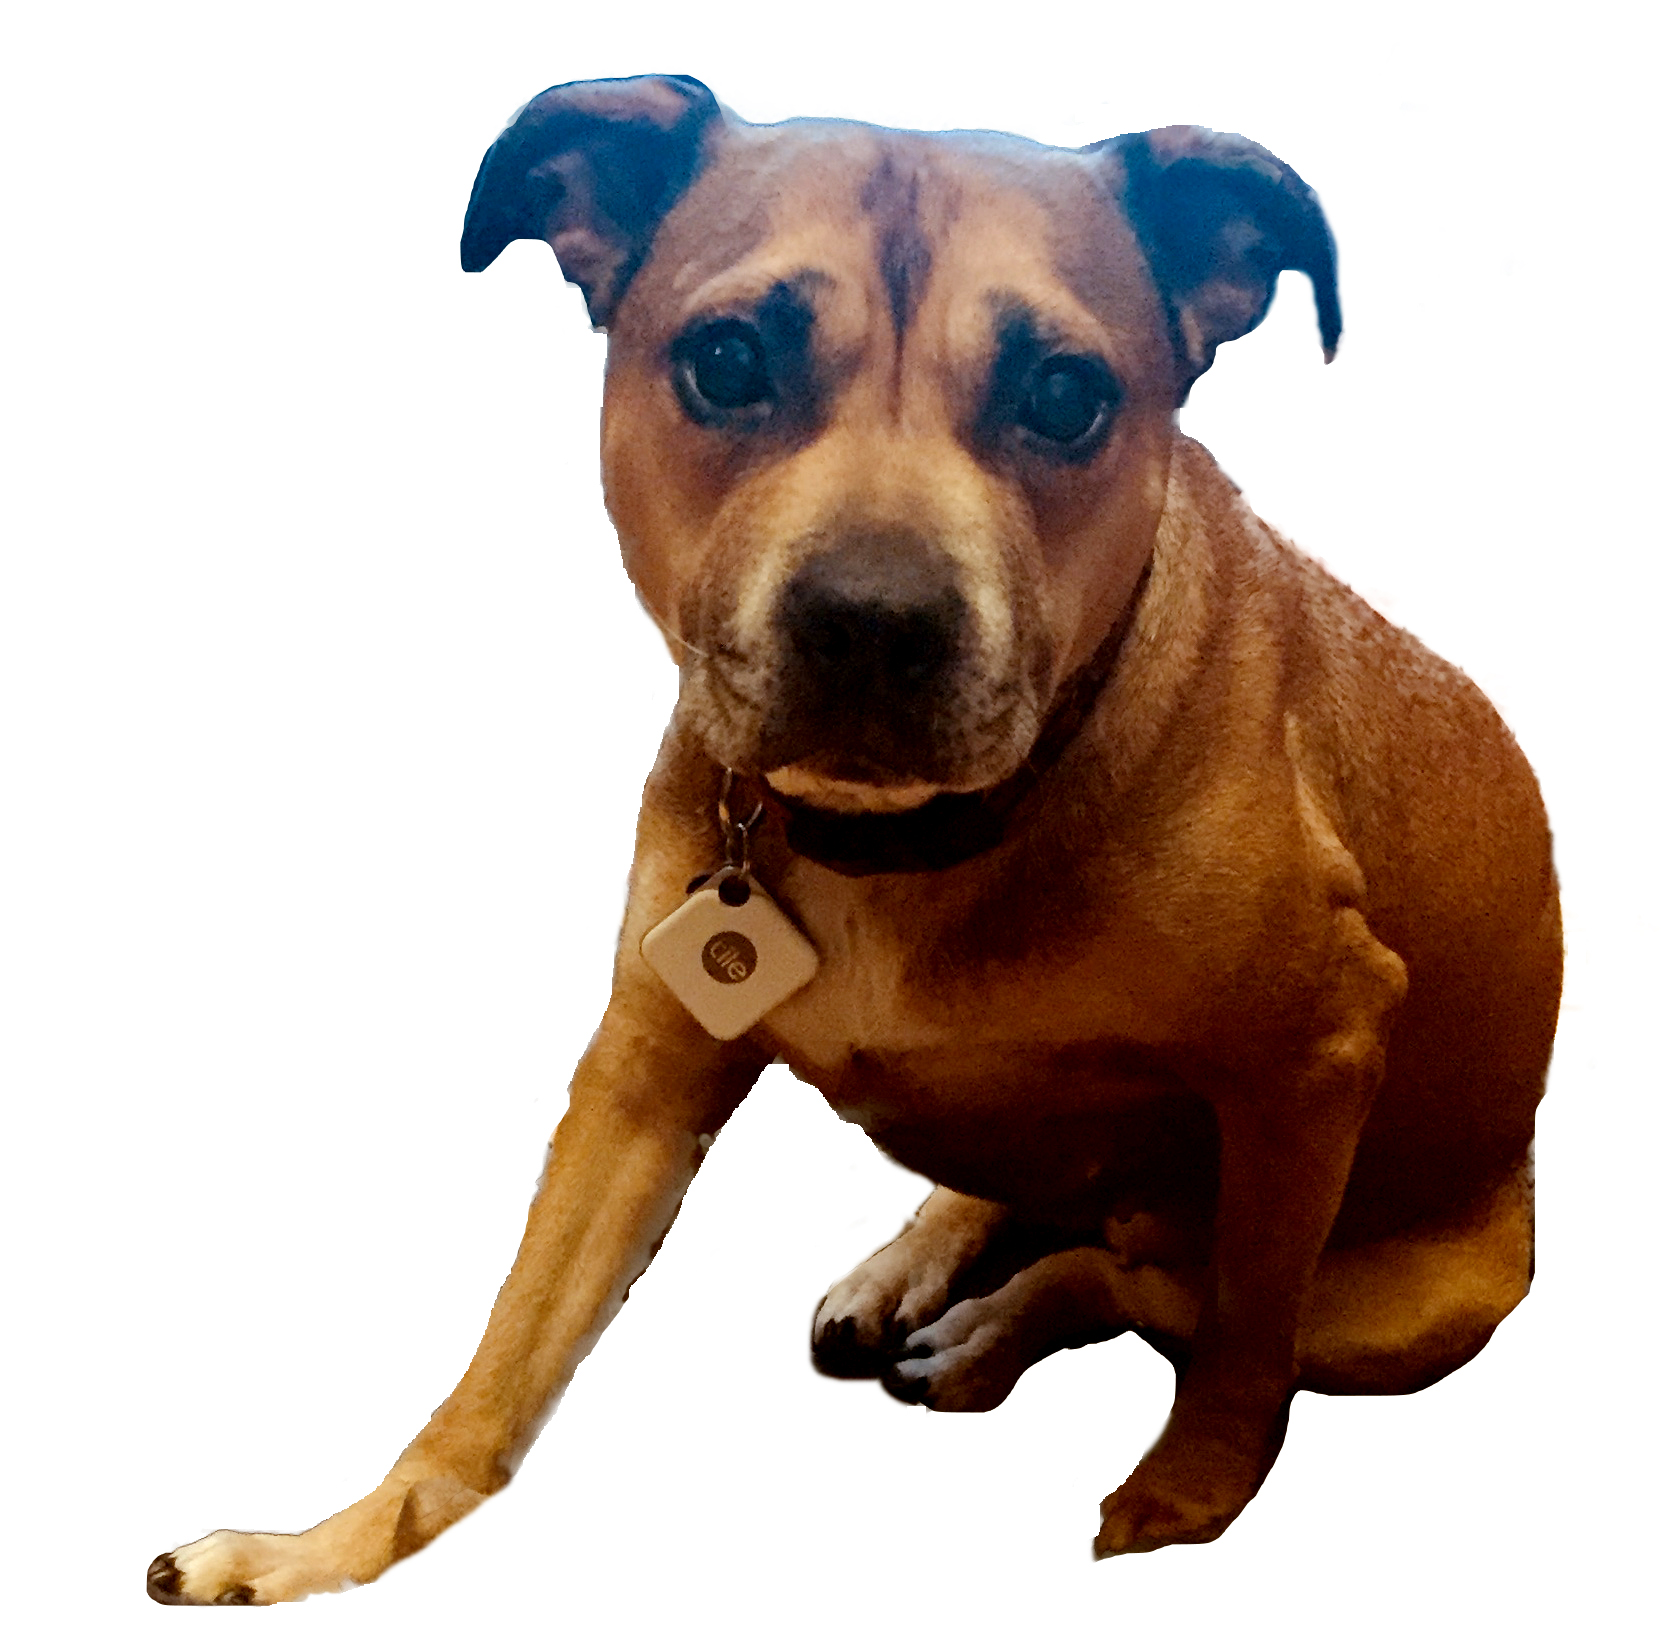 230069116fa Find Lost Dogs, Lost Cats, Missing Pets. The most effective way to ...